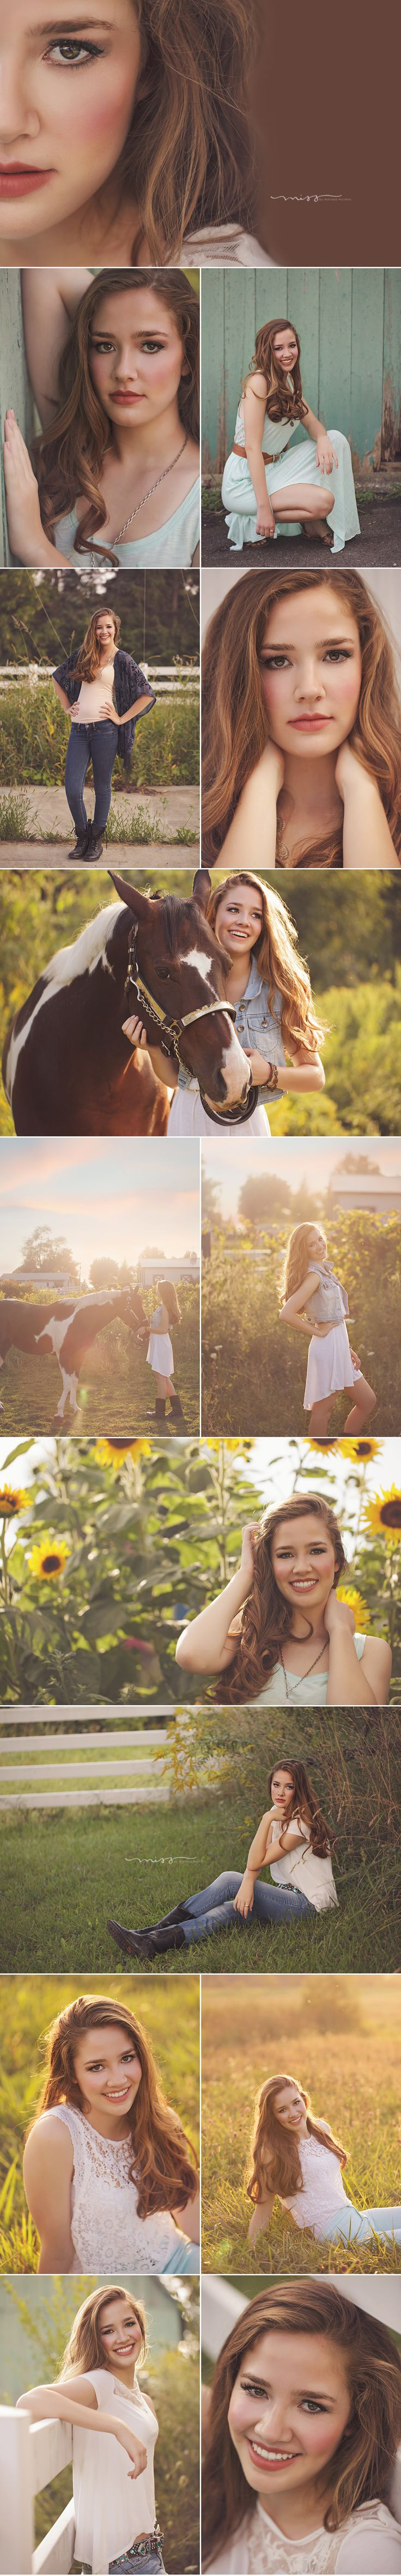 Miss by Marissa Mcinnis Ann Arbor Senior Photos | Lysette 1